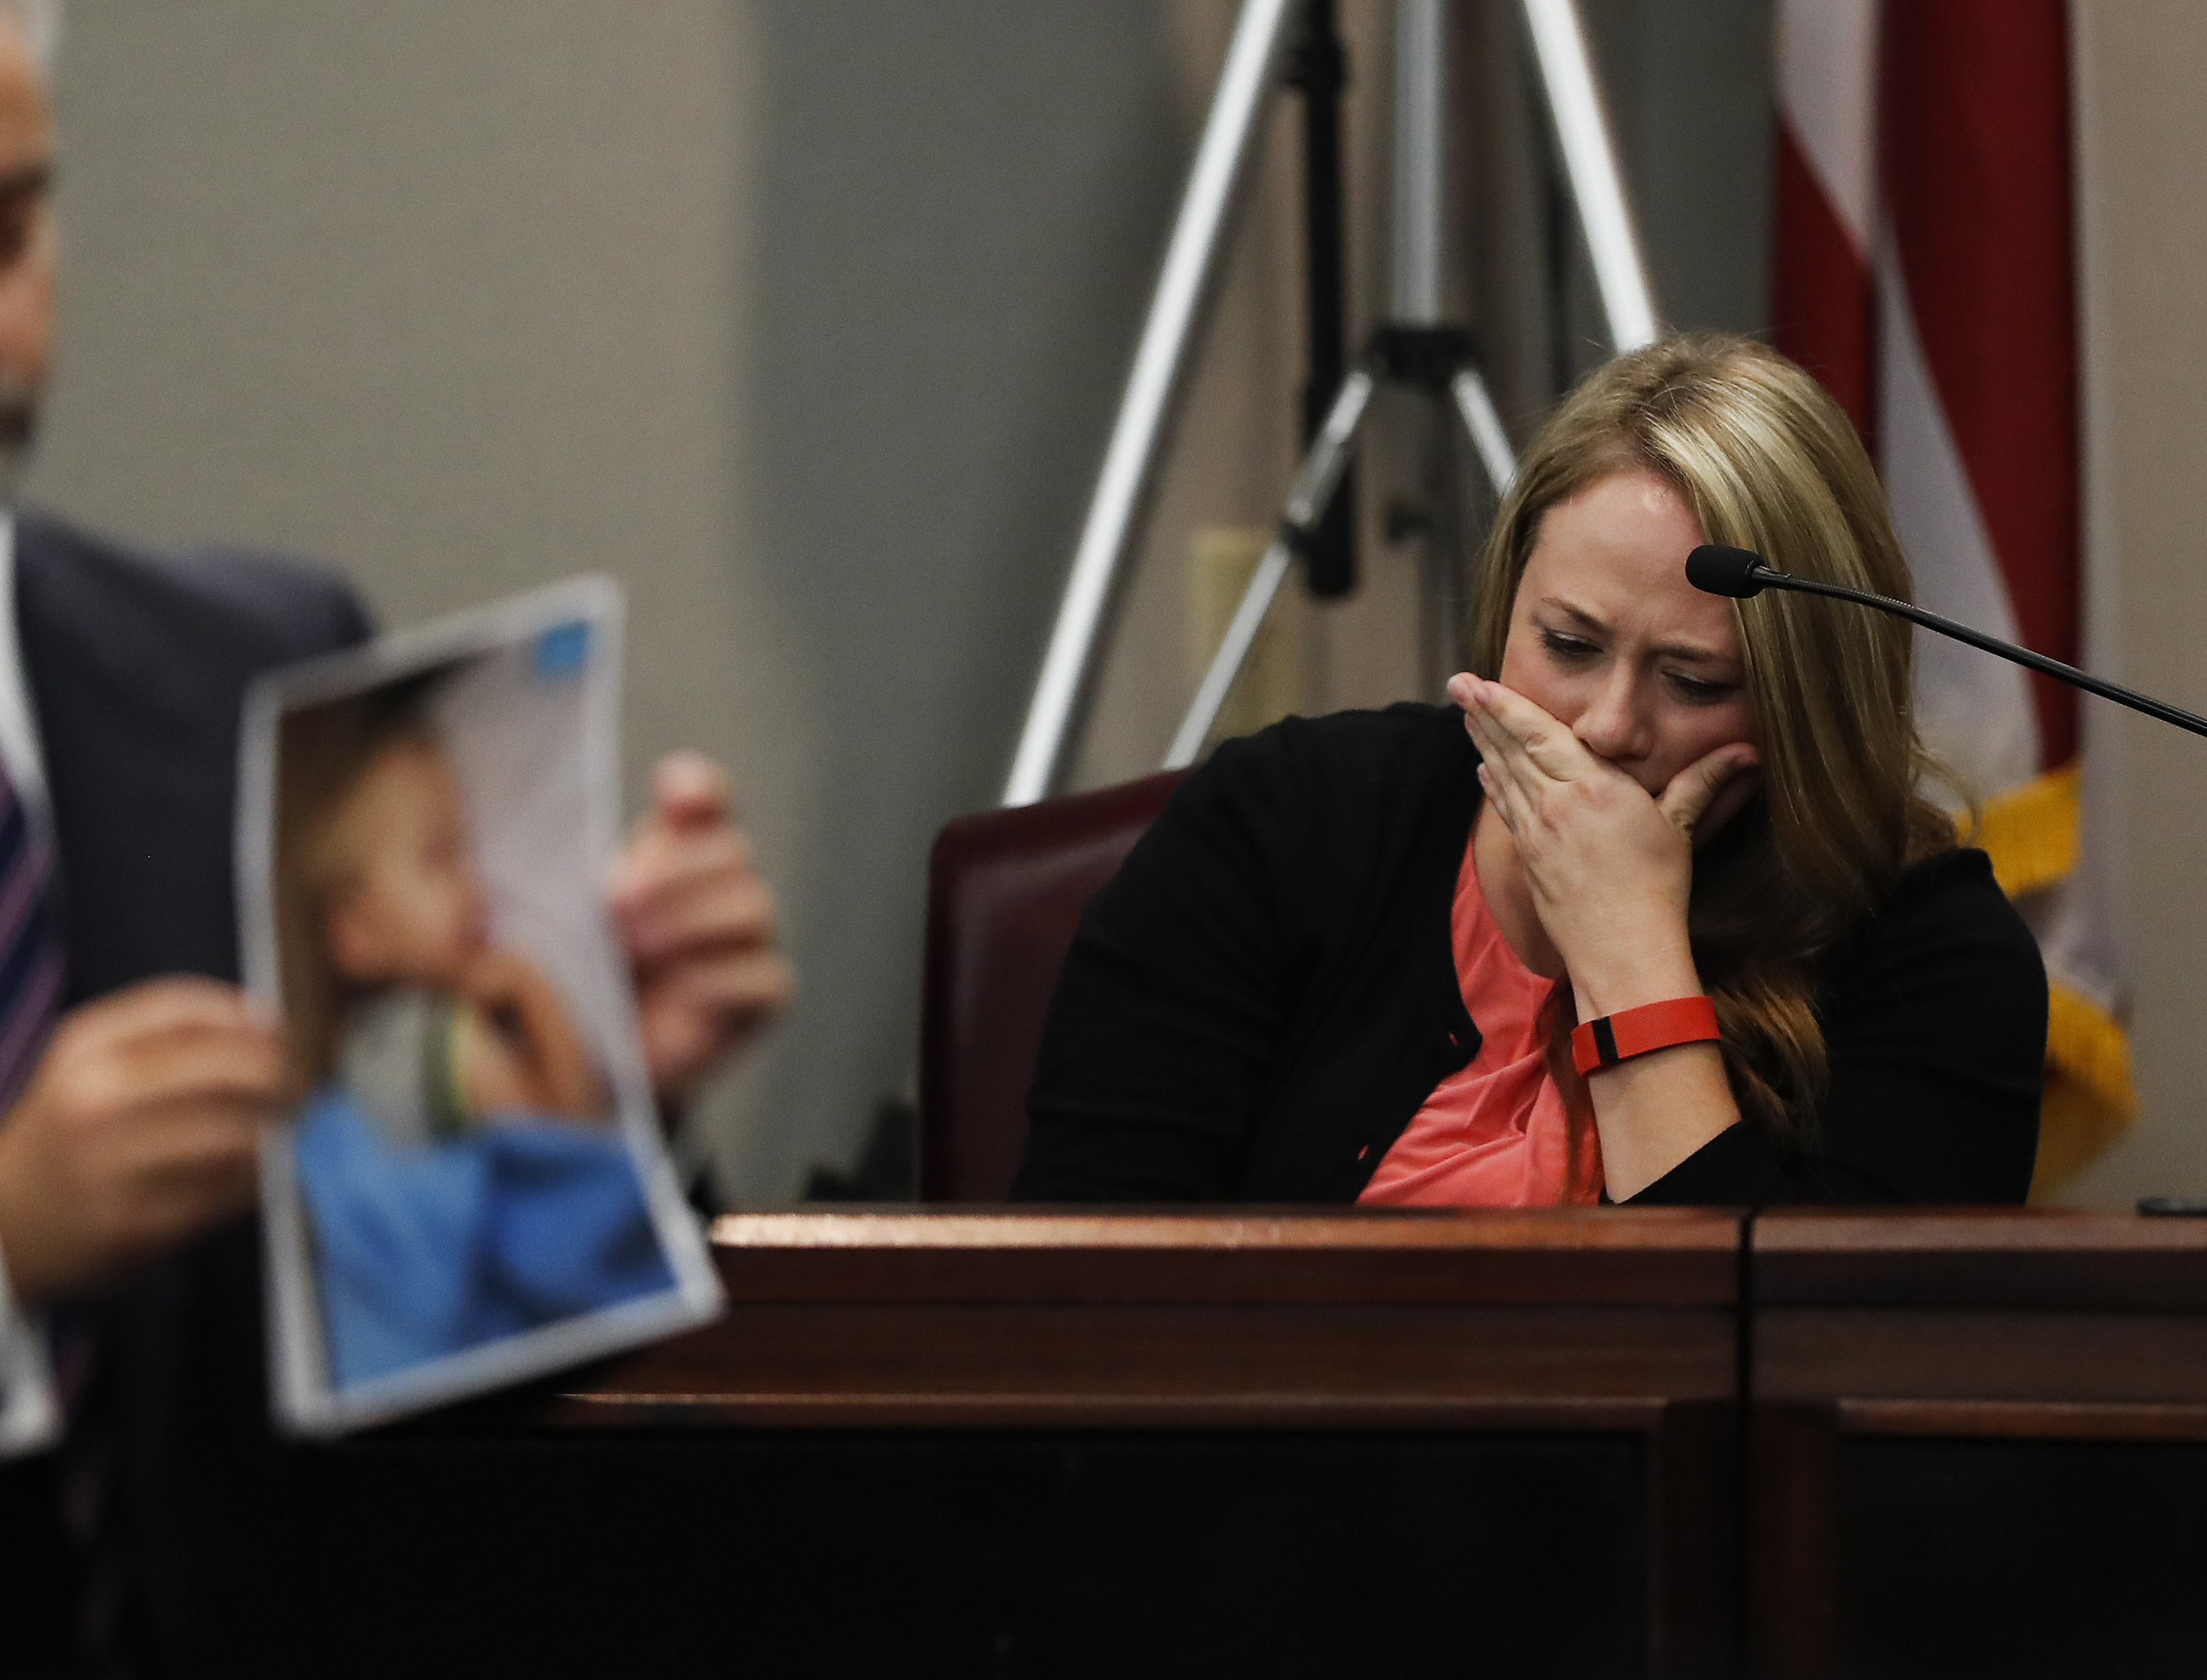 Leanna Taylor cries as an attorney shows photographs of her son Cooper to the jury during a murder trial for her ex-husband Justin Ross Harris, on Oct. 31, 2016, in Brunswick, Ga.